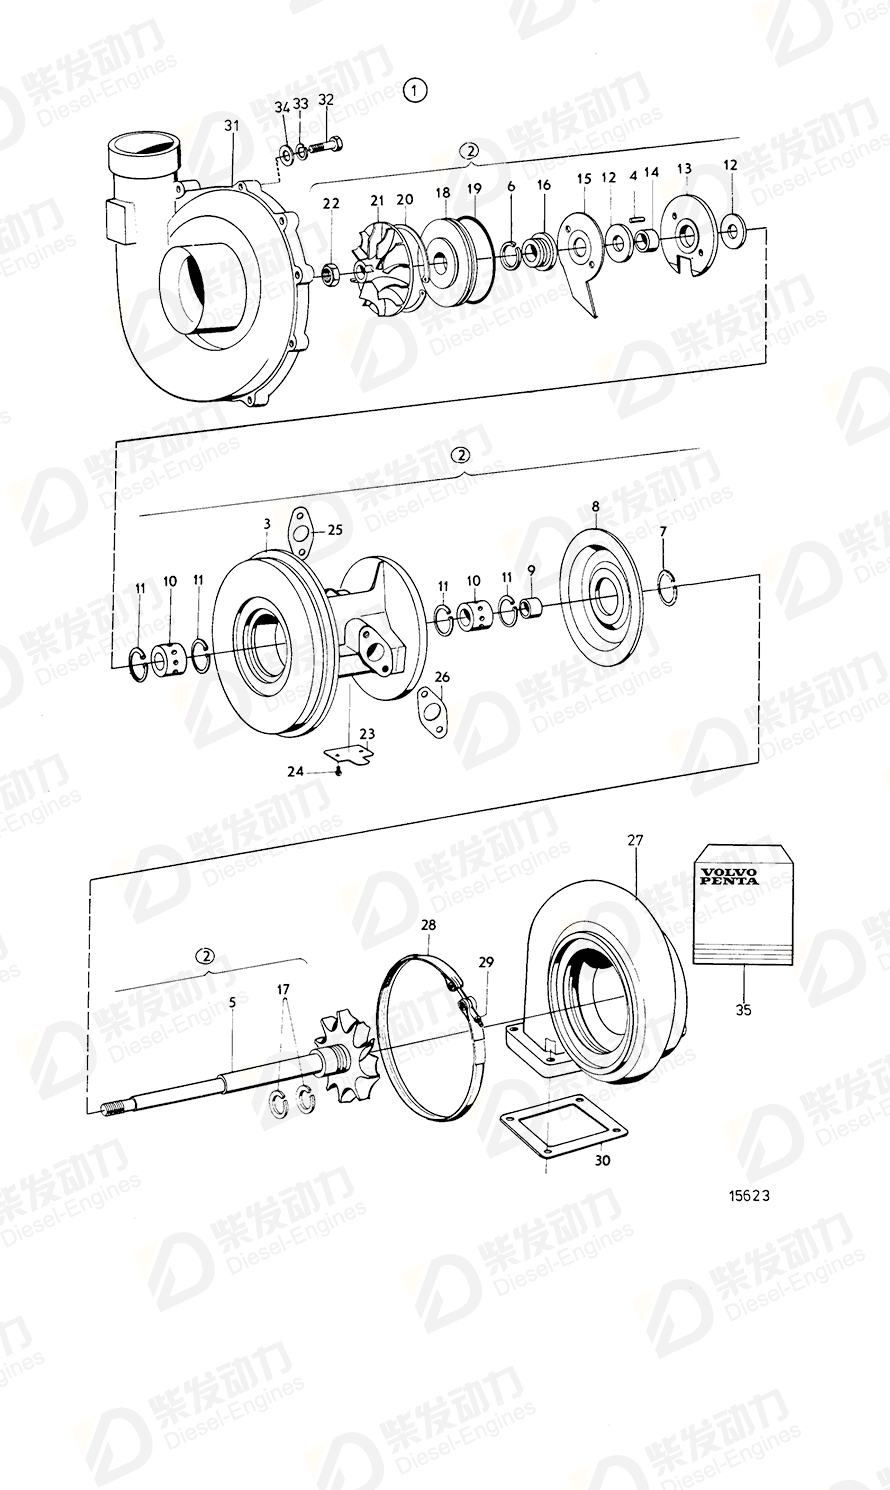 VOLVO Piston ring 411794 Drawing